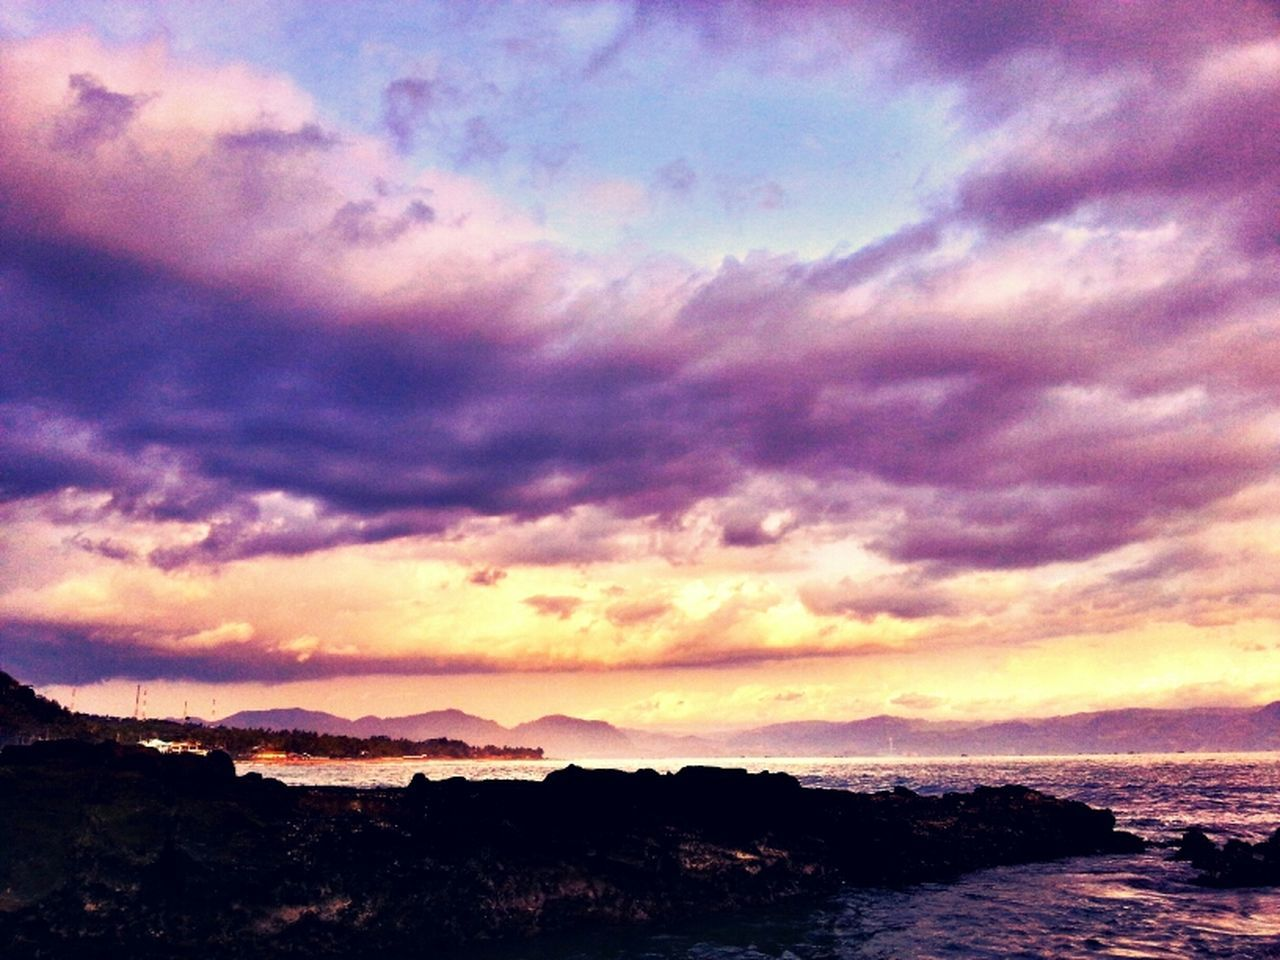 sky, sunset, beauty in nature, cloud - sky, nature, tranquil scene, scenics, tranquility, no people, outdoors, silhouette, sea, water, mountain, day